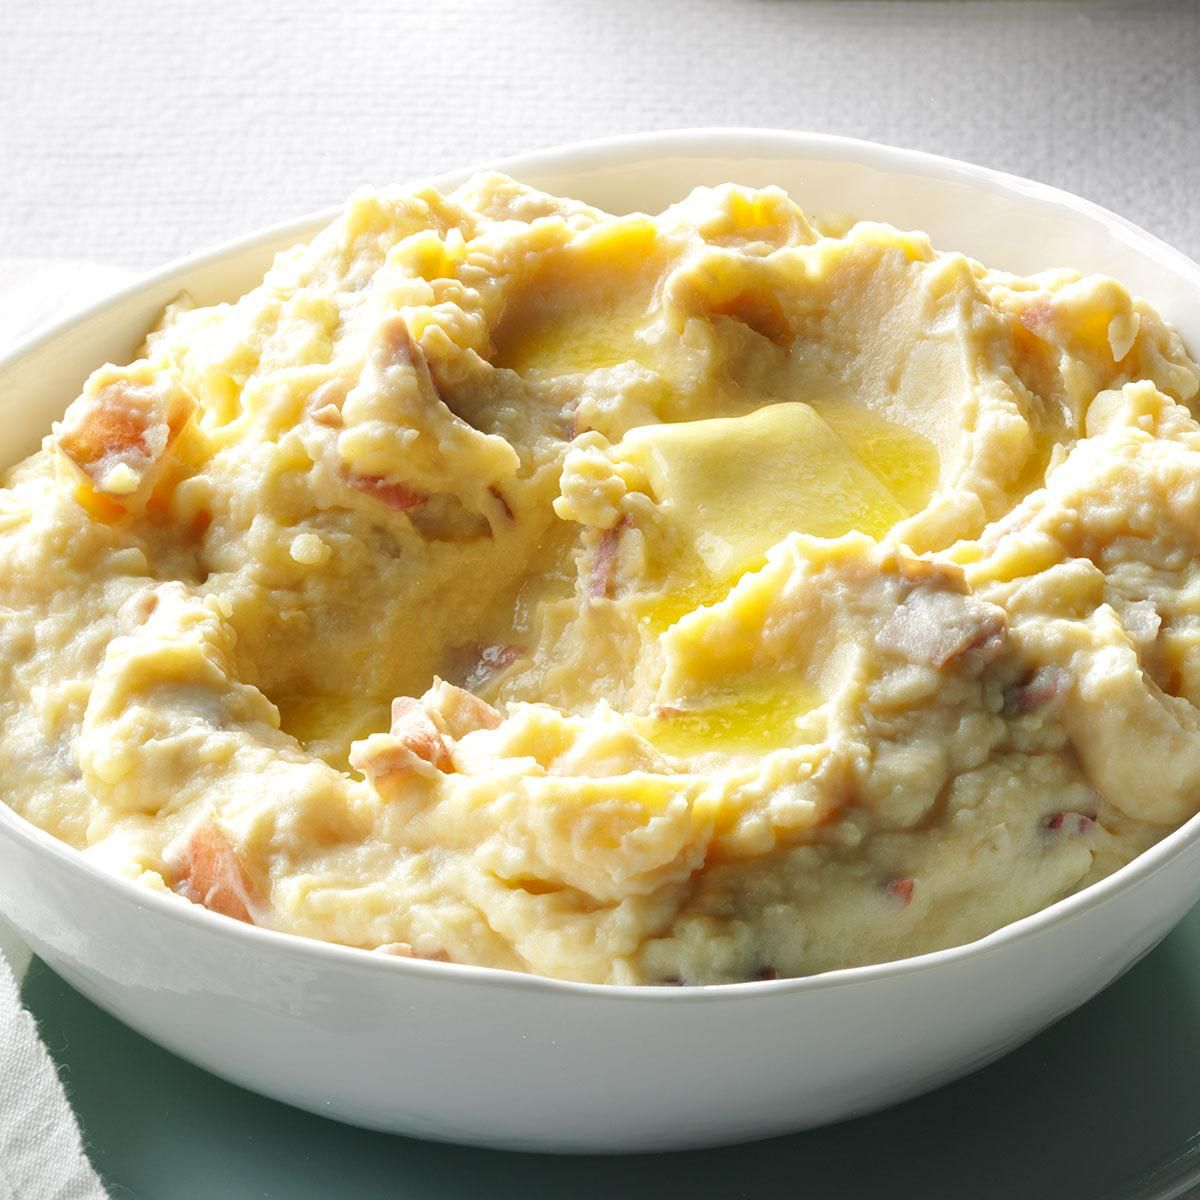 Rich Creamy Parmesan Mashed Potatoes Recipe Parmesan Mashed Potatoes Mashed Potato Recipes Potatoes